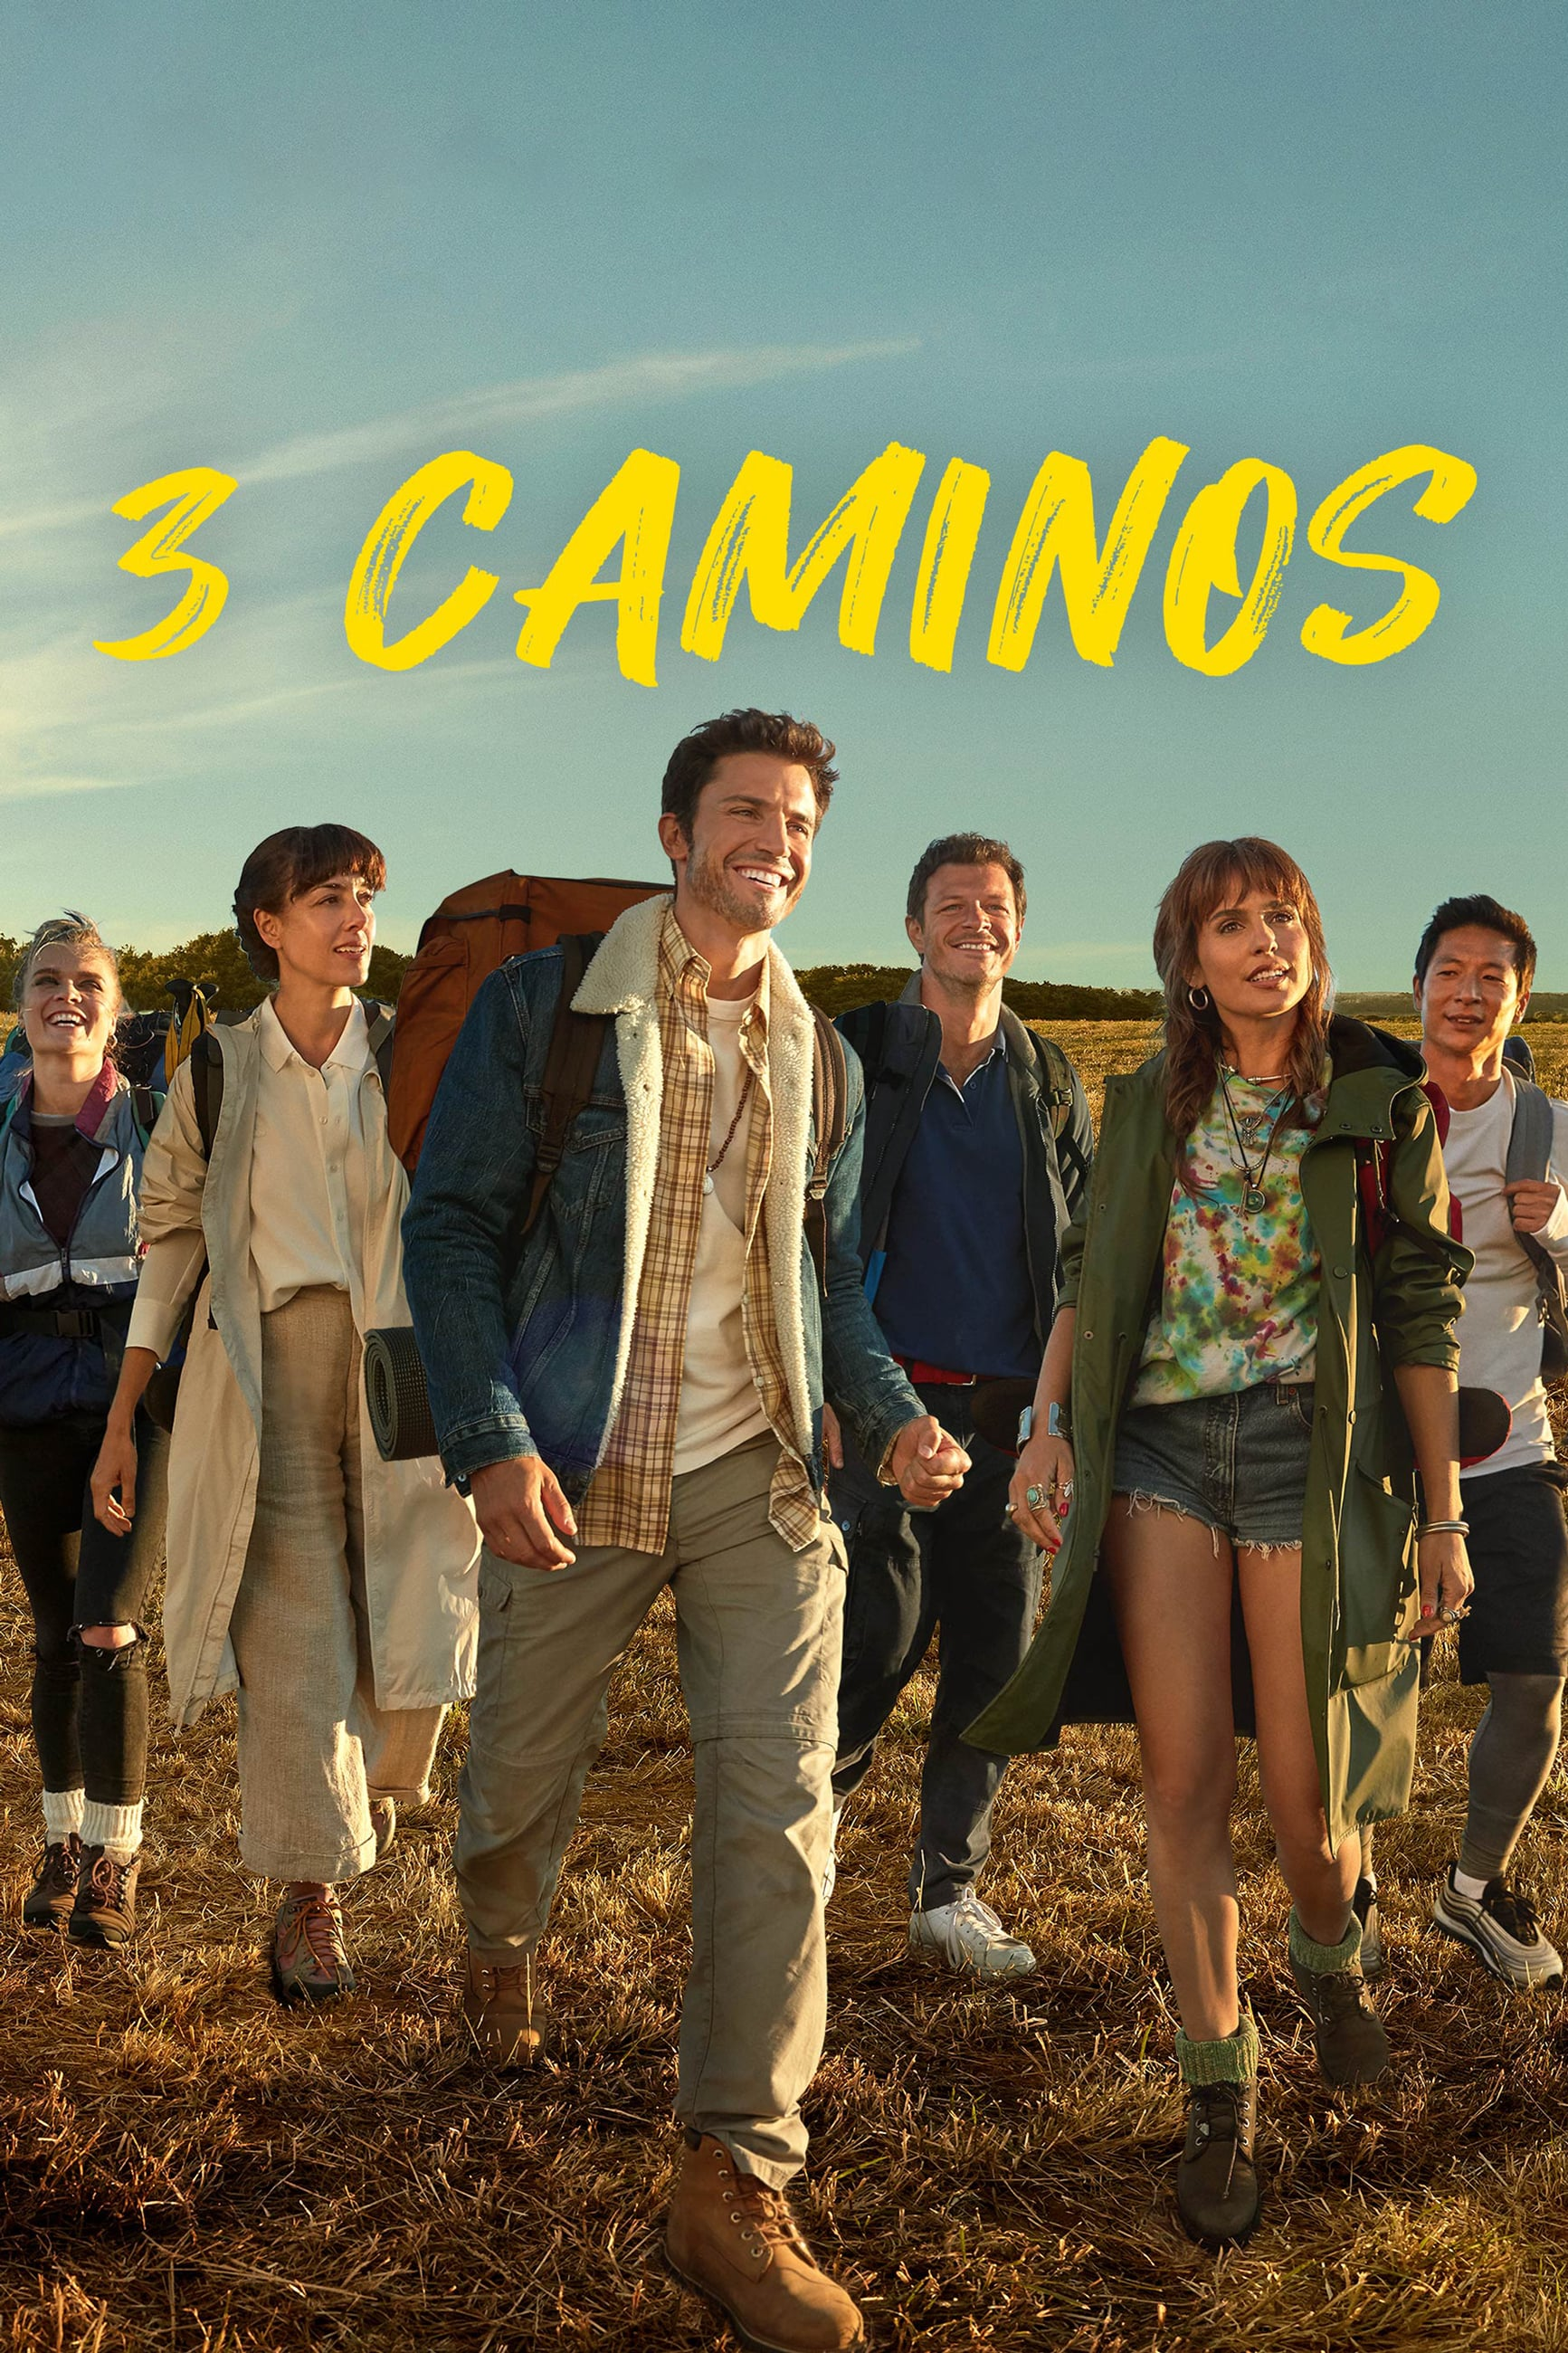 3 Caminos TV Shows About Friendship